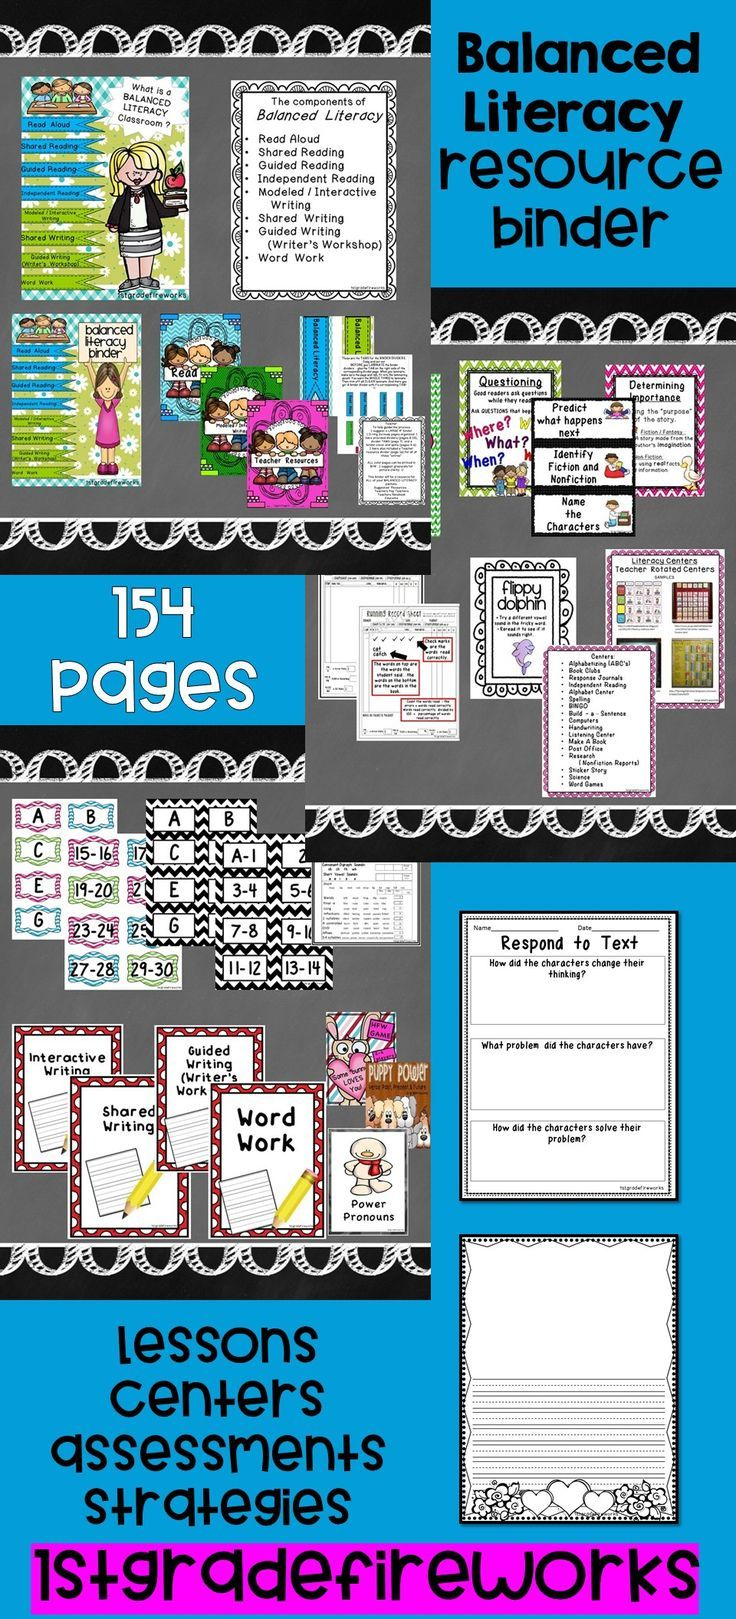 All of the pieces needed to create a BALANCED LITERACY classroom are included. Descriptors, samples, pictures, and resources are included.Printables in color & B/W.  Balanced Literacy consists of: Read Alouds Shared Reading Guided Reading Independent Reading Modeled / Interactive Writing Shared Writing Guided Writing (Writer's Workshop) Word Work https://www.teacherspayteachers.com/Product/What-is-a-BALANCED-LITERACY-classroom-1776415